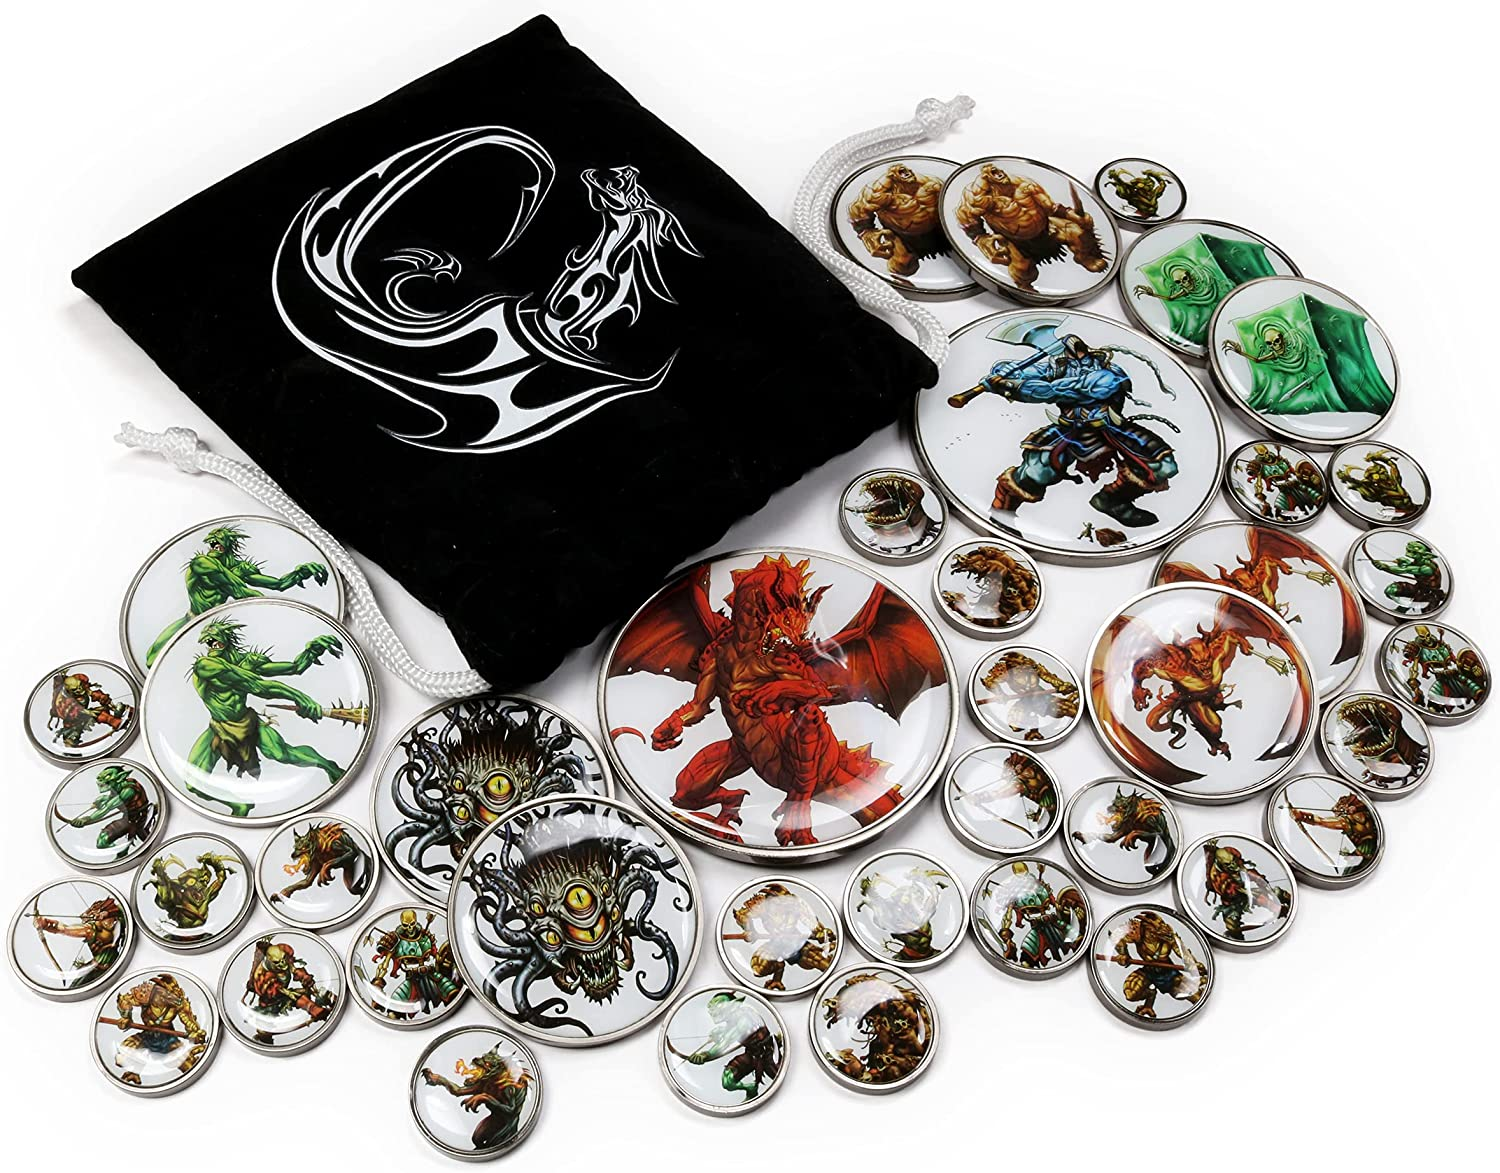 Baltimore Mall Chill Approach Premium DD Tabletop - Tokens RPG Creatur Monster OFFicial shop